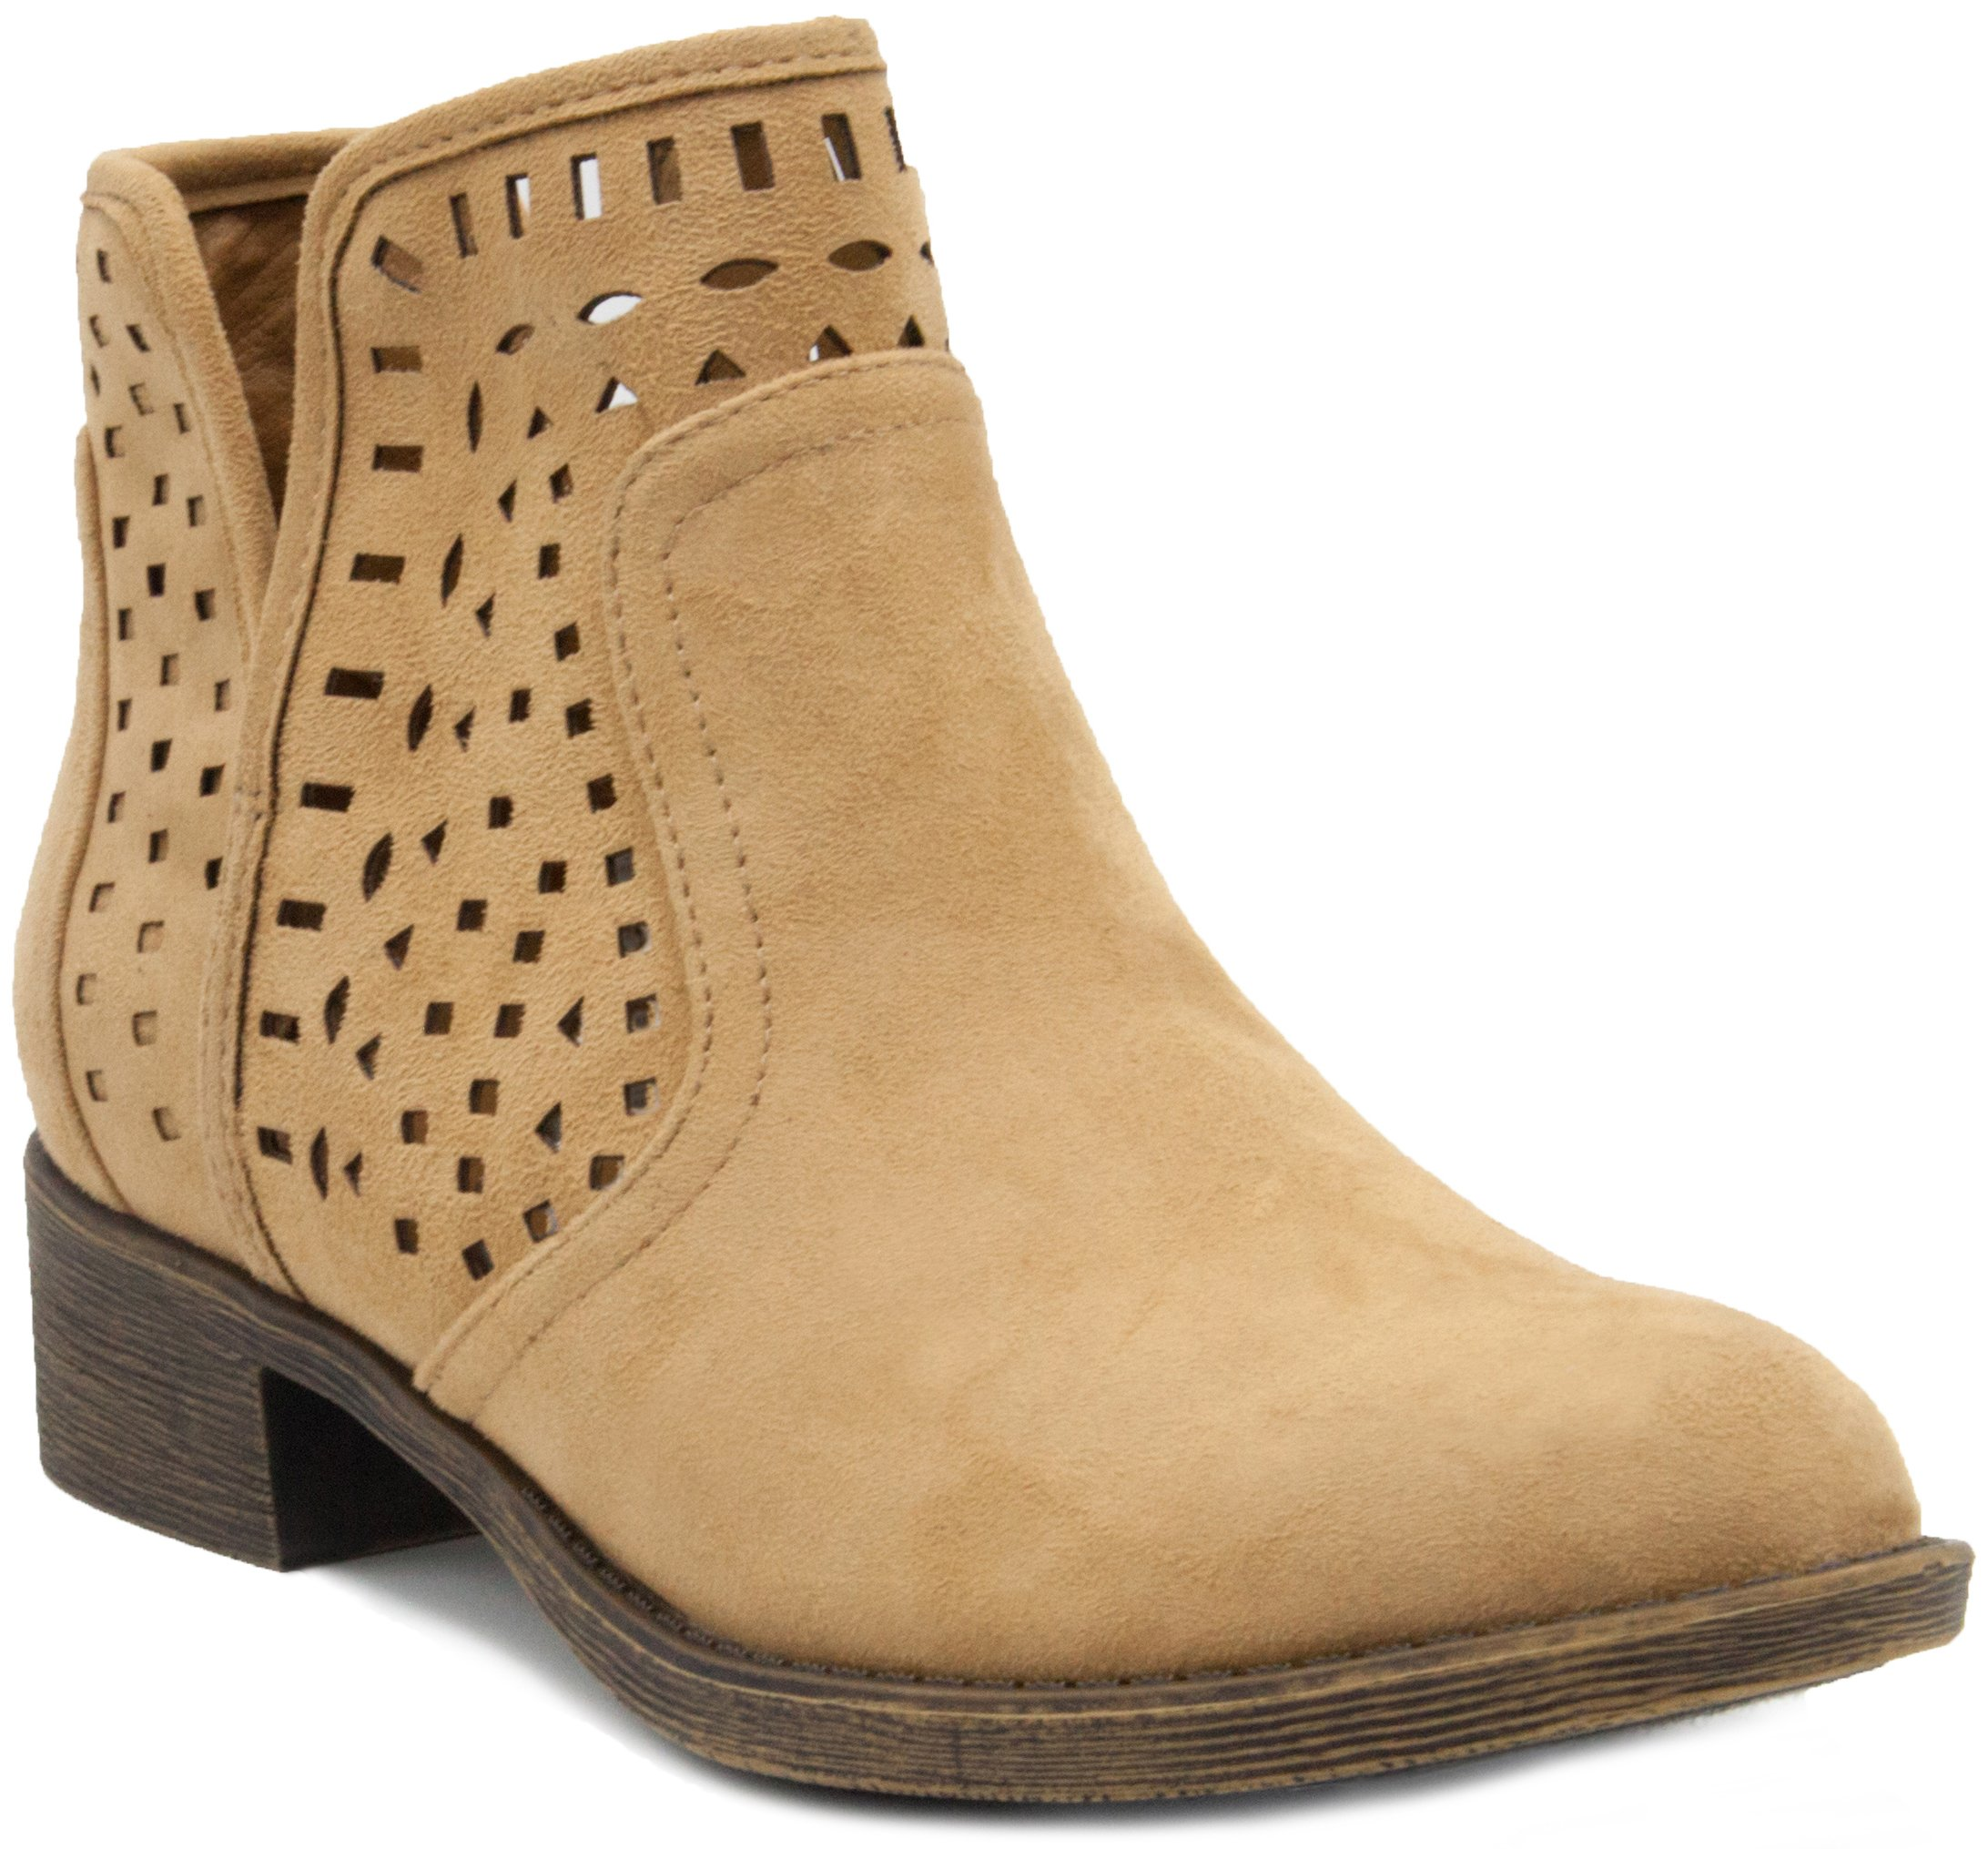 Sugar Women's Calico Ankle Bootie Boot with Perferated Chop Out Design Taupe Fabric 8.5